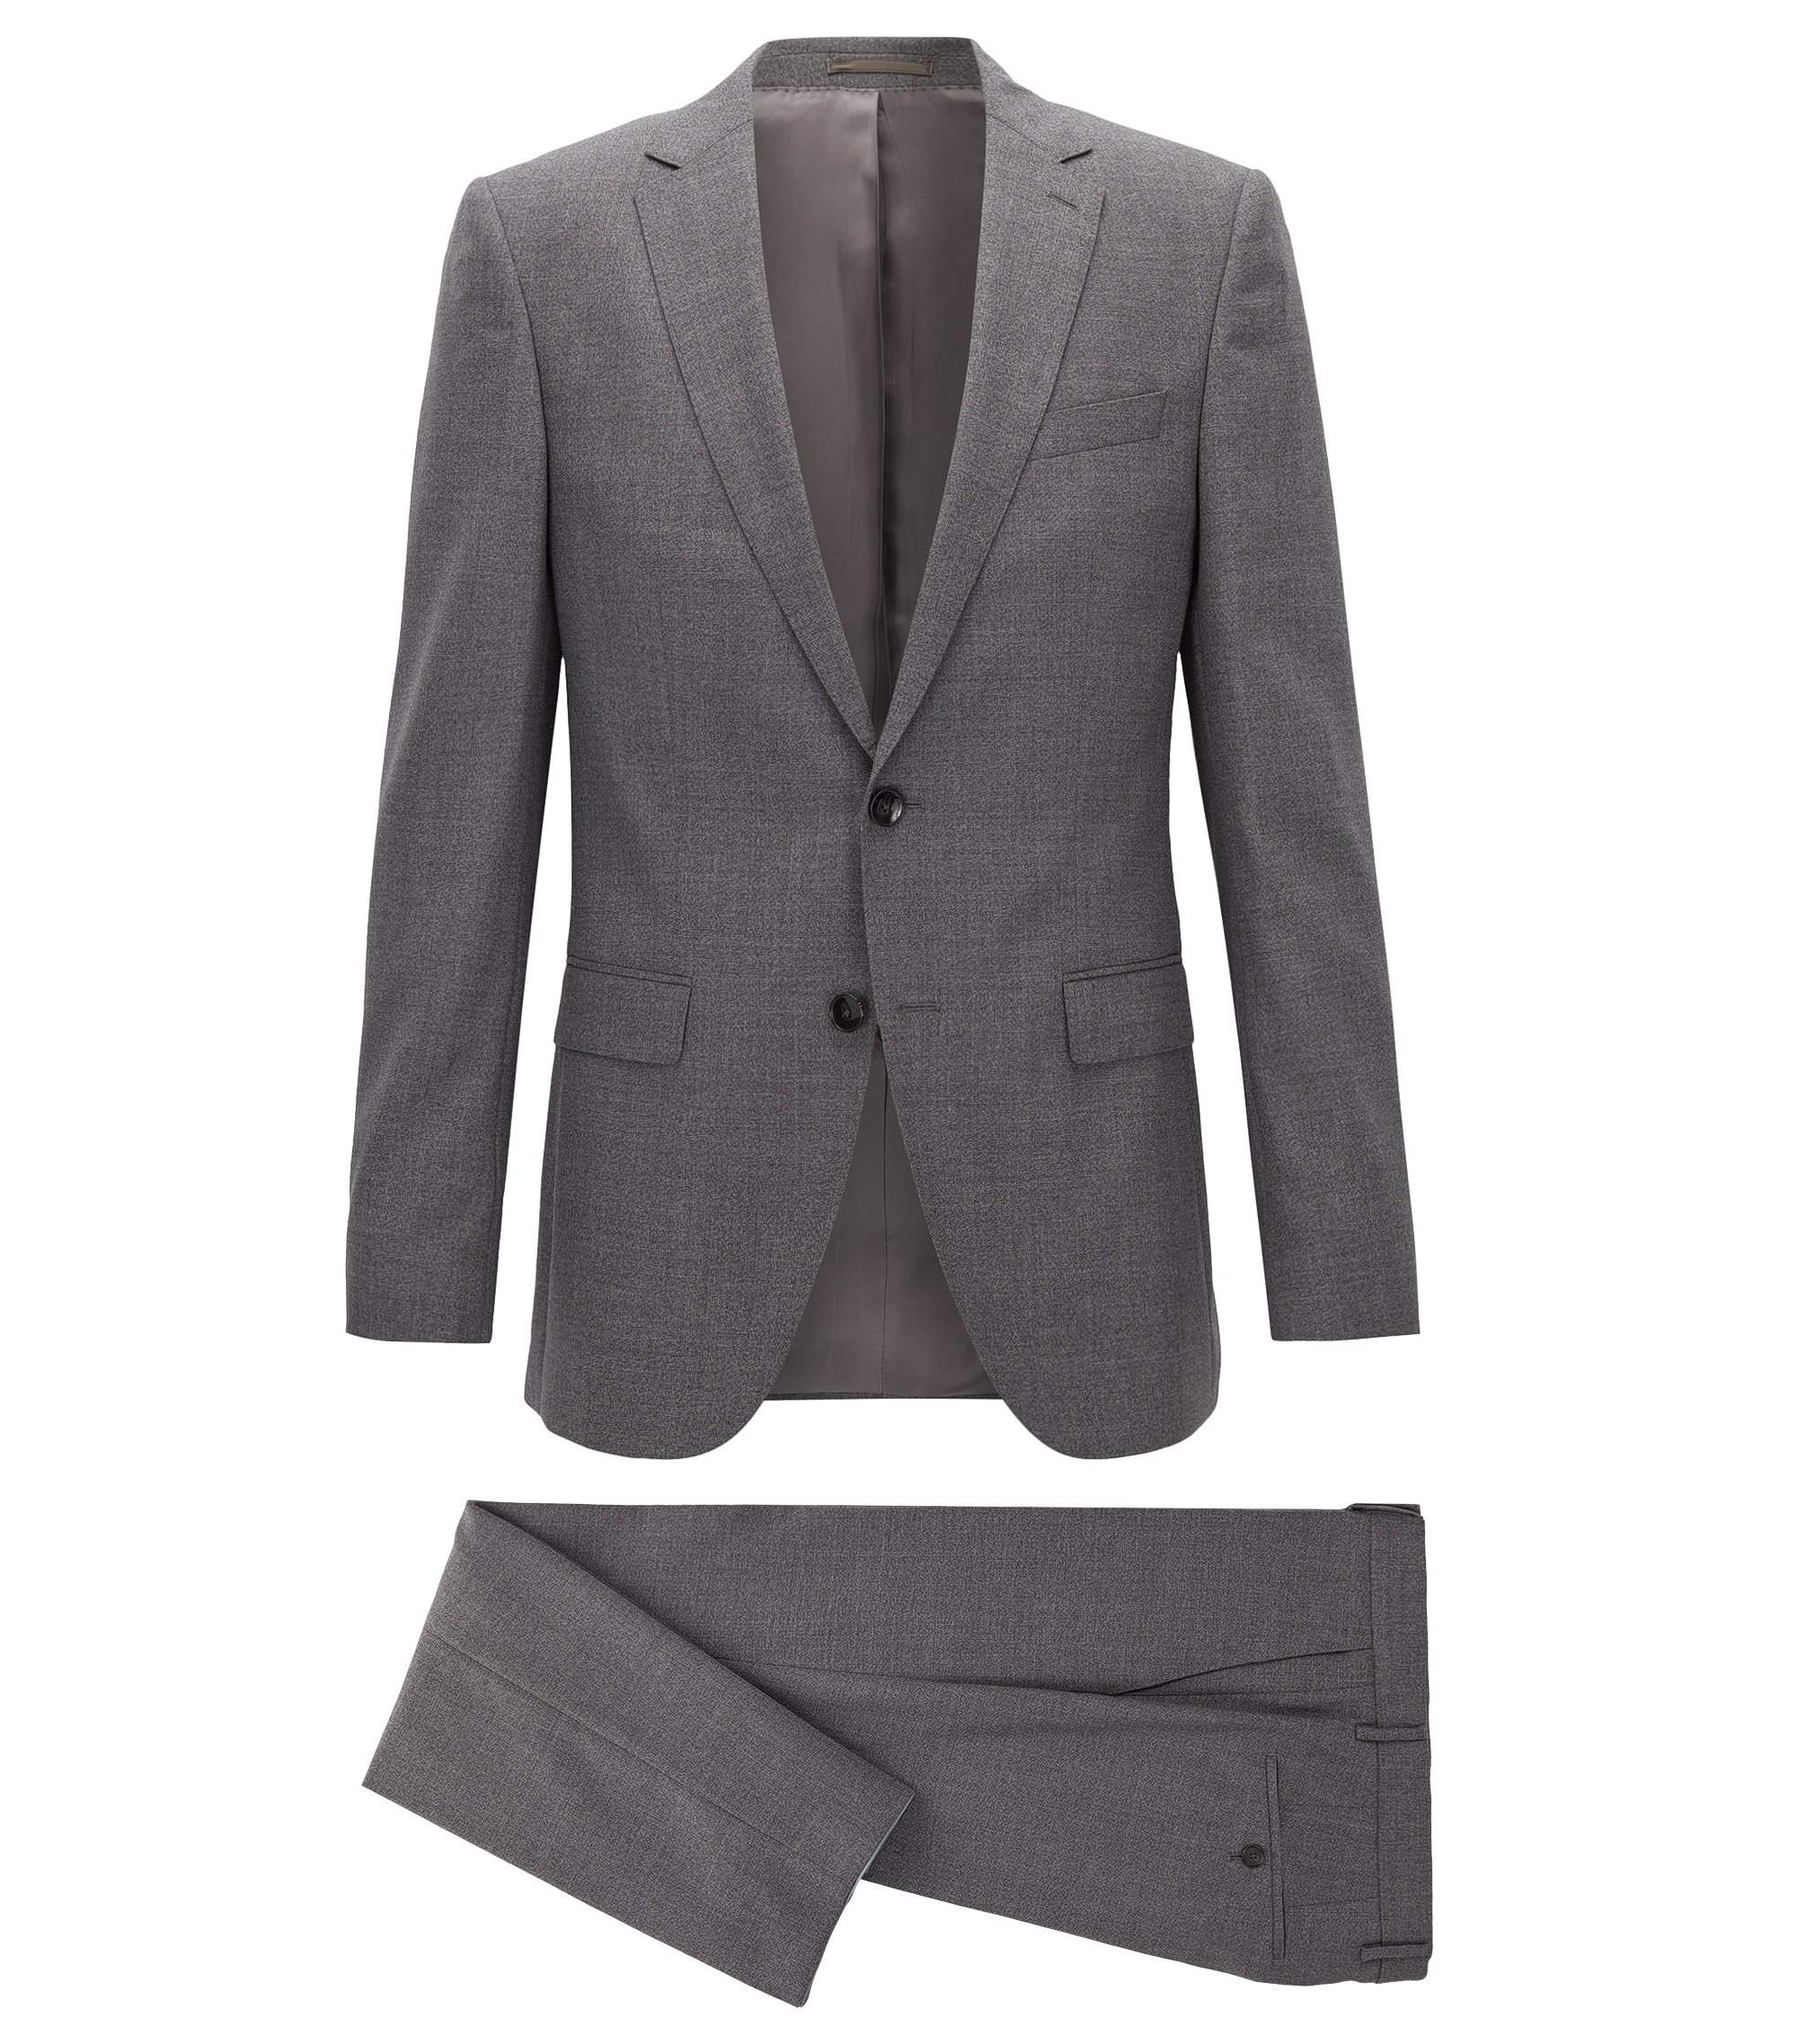 Heathered Virgin Wool Suit, Slim Fit | Novan/Ben, Grey